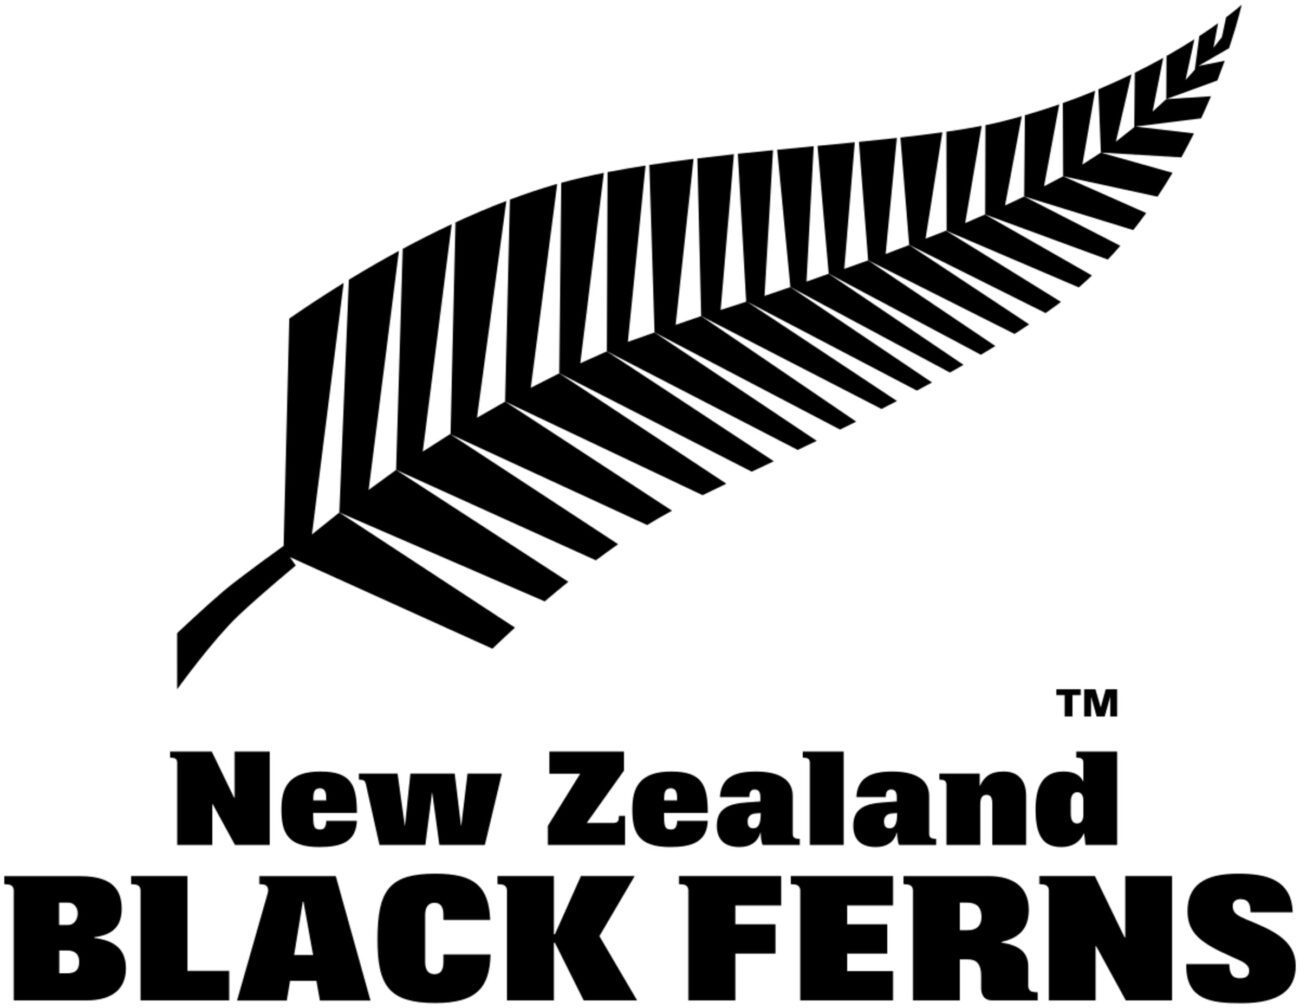 Watching the whole game is just like watching a show or movie. And the Olympics 2021 are no different! Check out our highlights of the Black Ferns' haka.